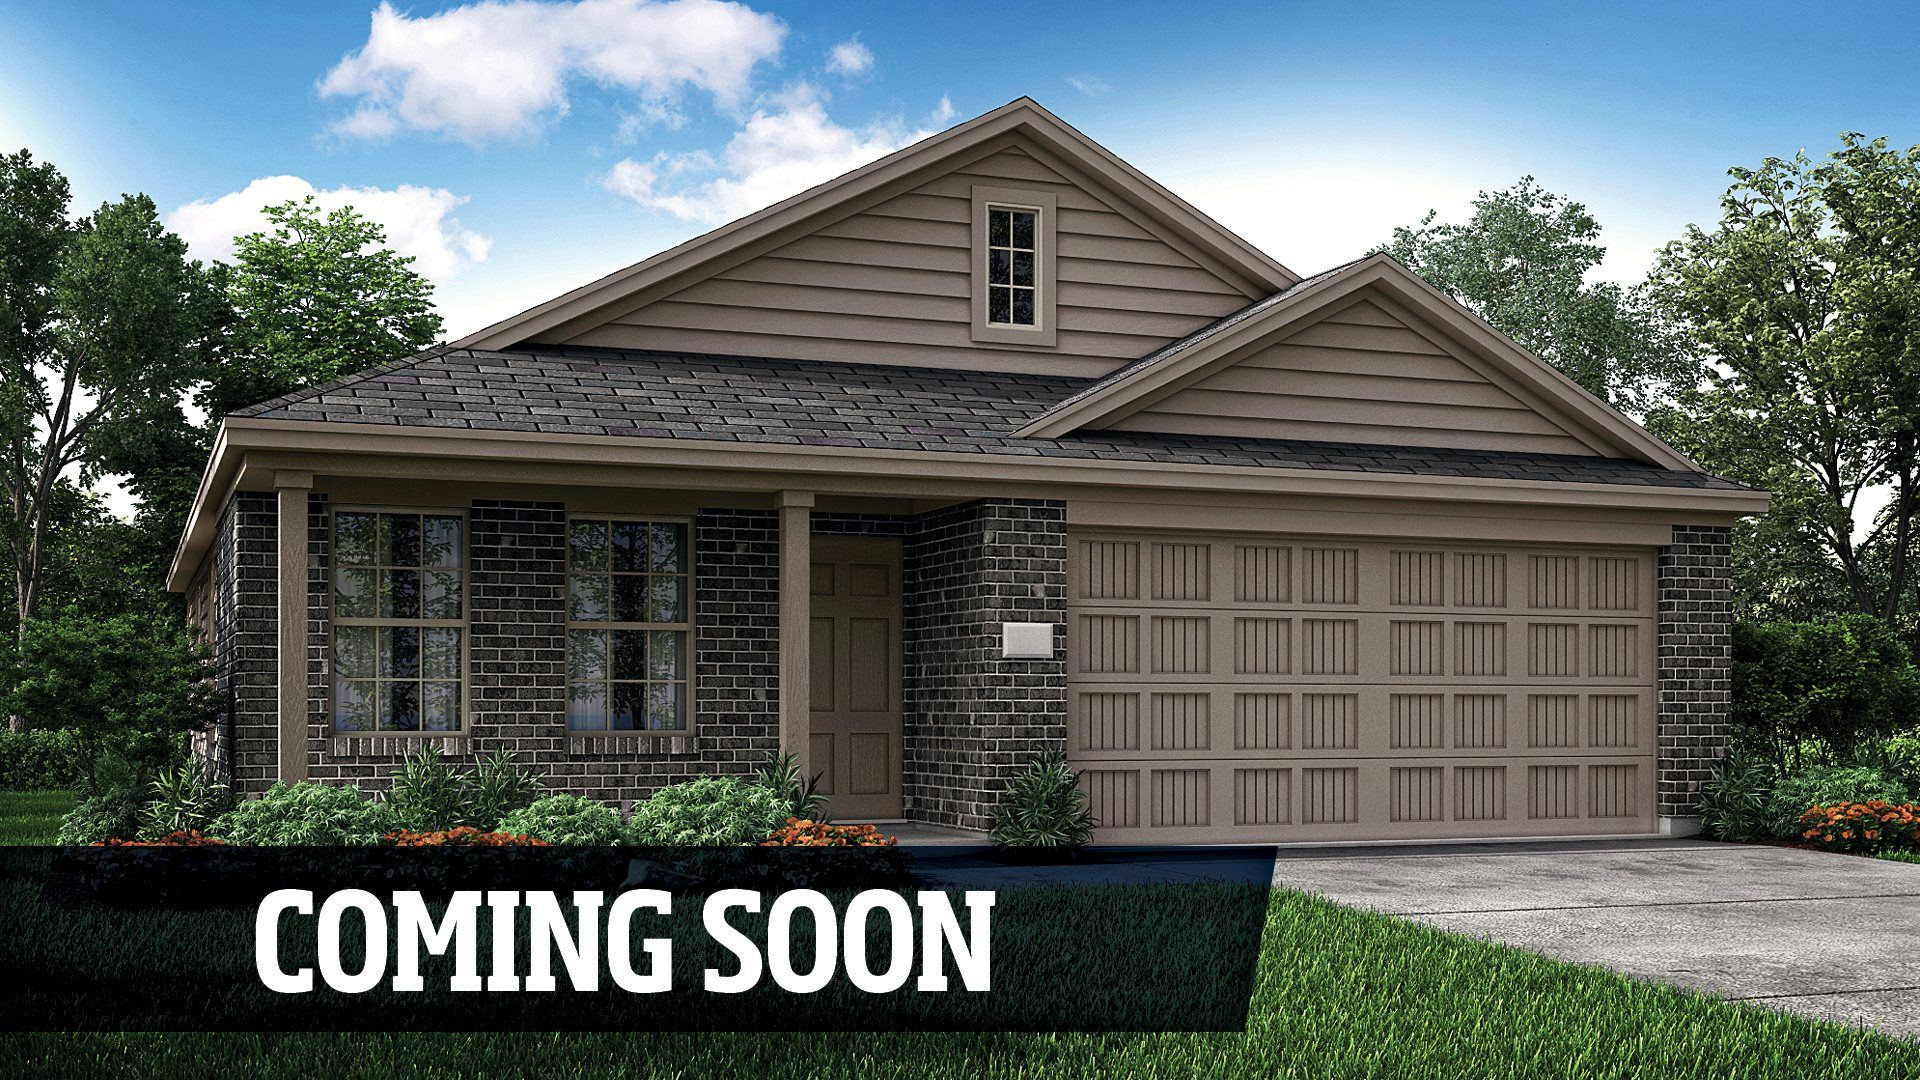 New Homes Coming Soon to Dallas